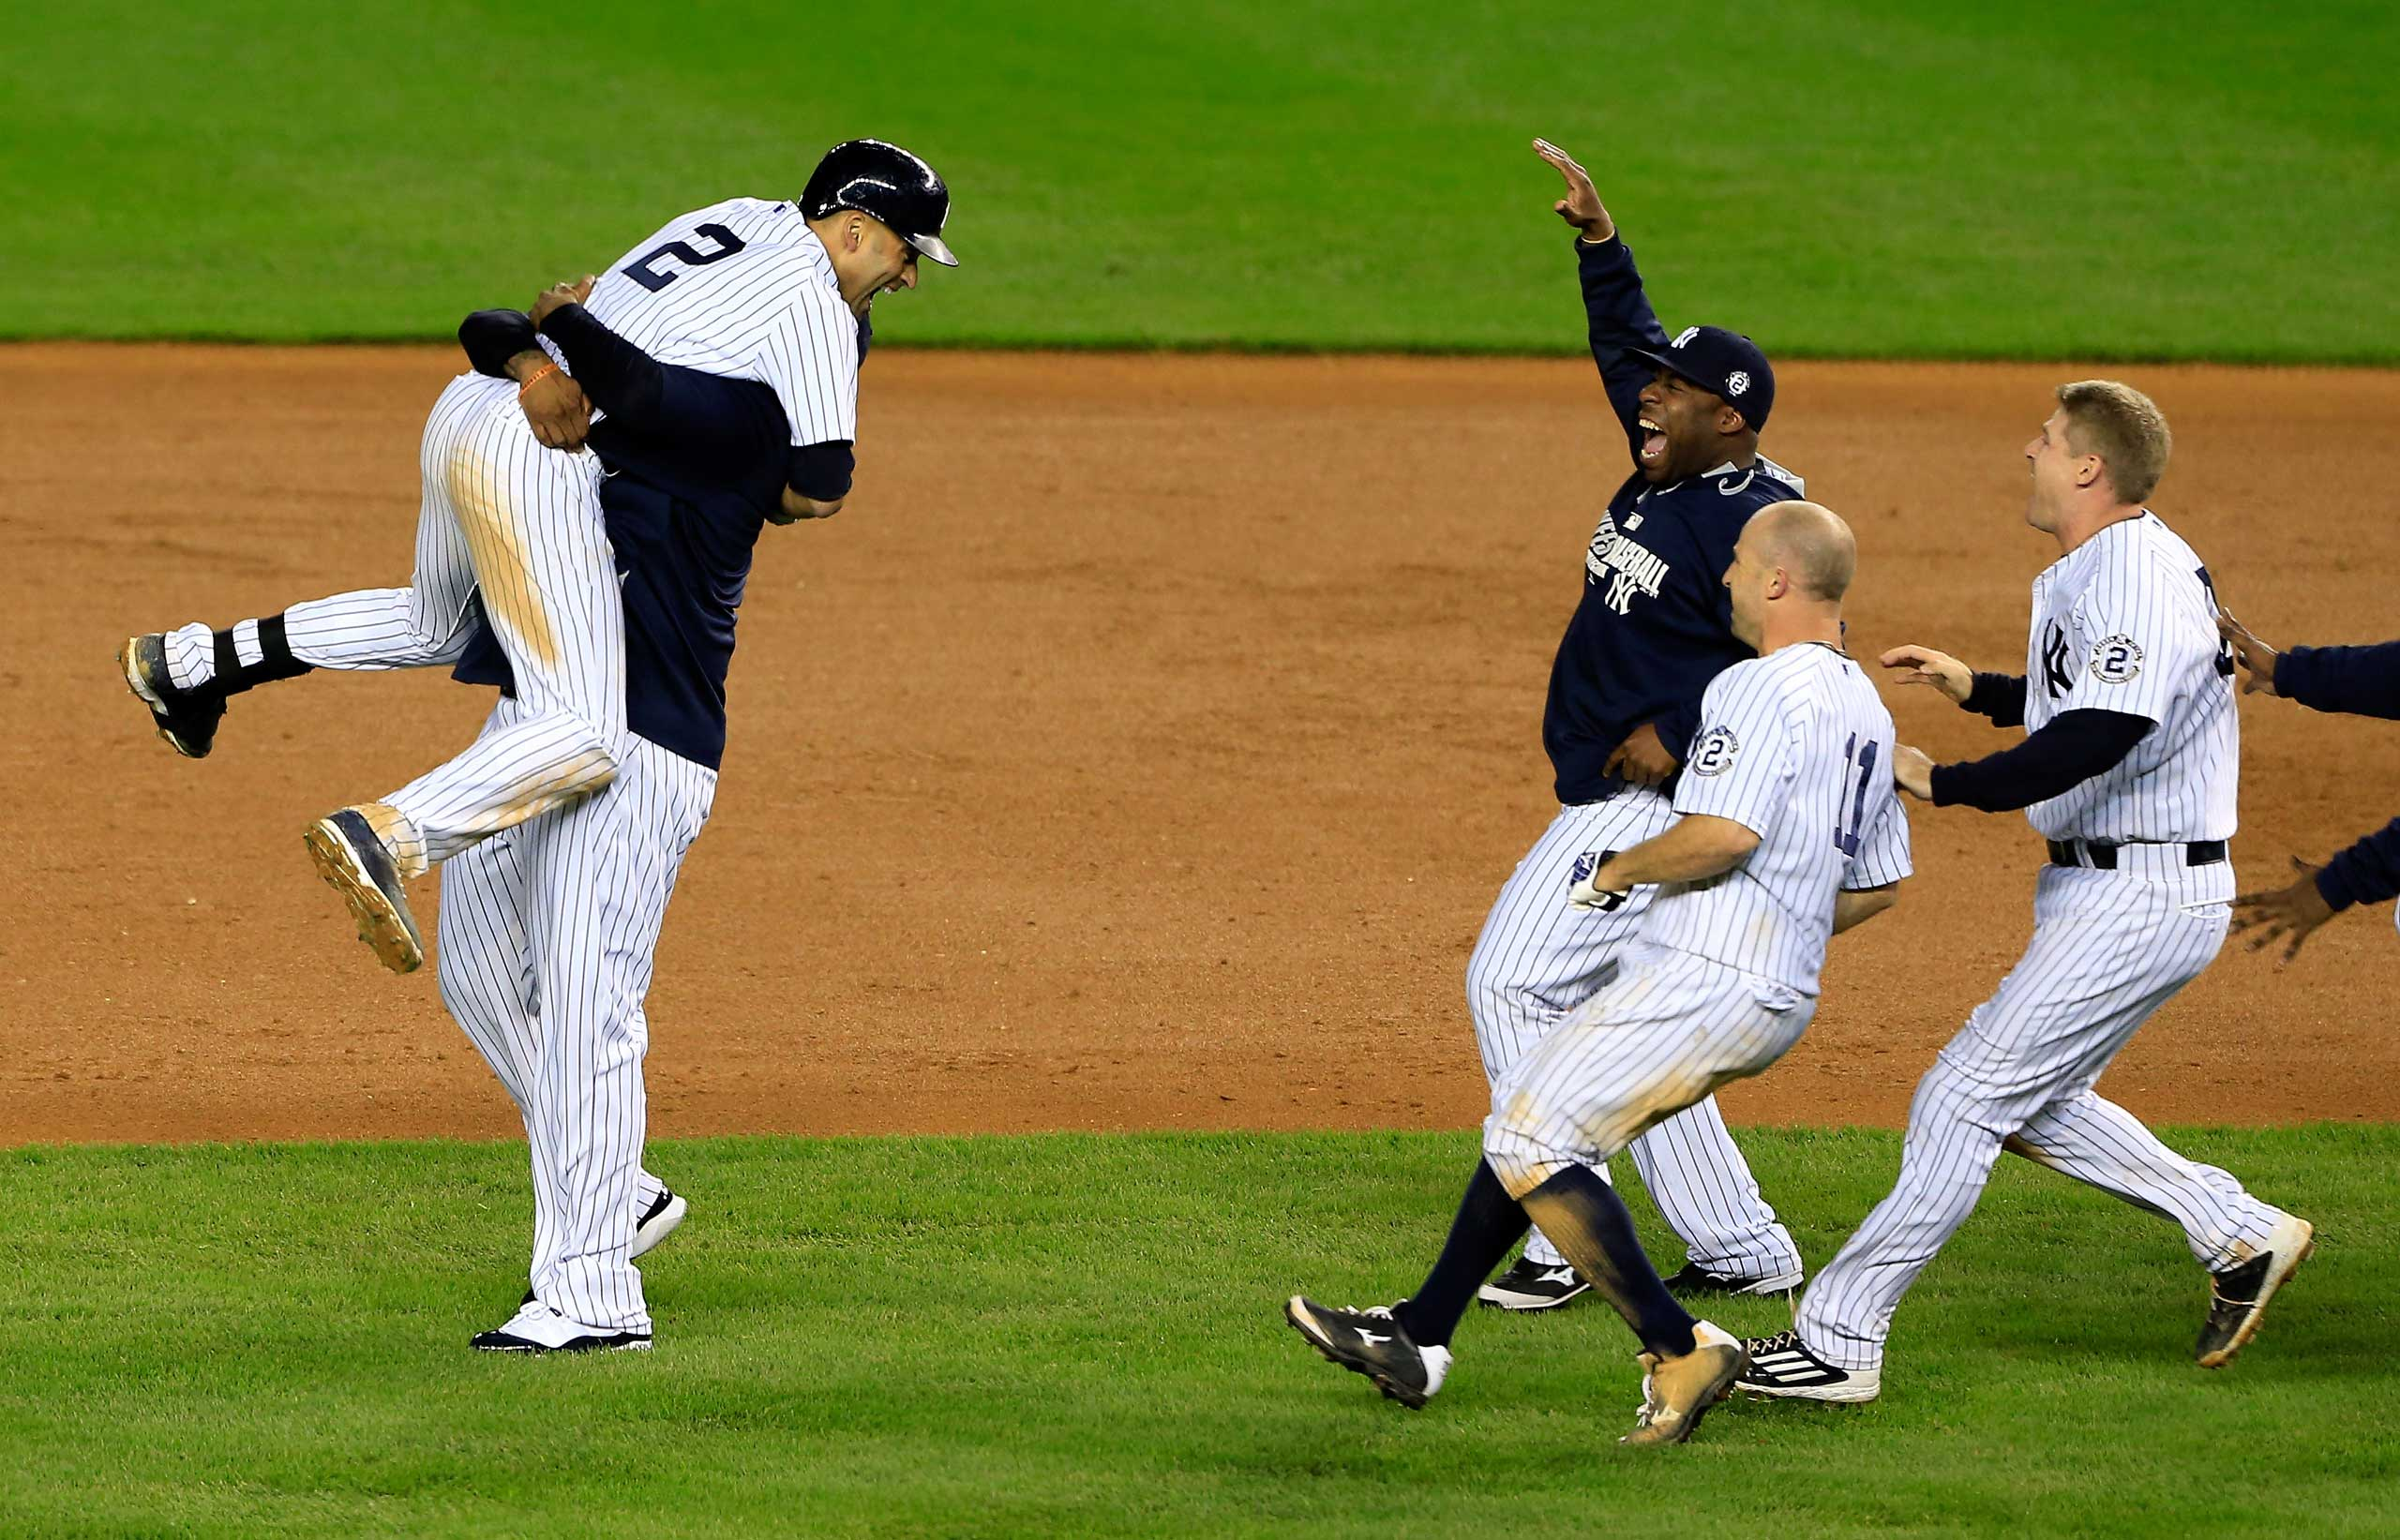 Derek Jeter celebrates with his teammates after a game winning RBI hit in the ninth inning against the Baltimore Orioles in his last game ever at Yankee Stadium on Sept. 25, 2014.